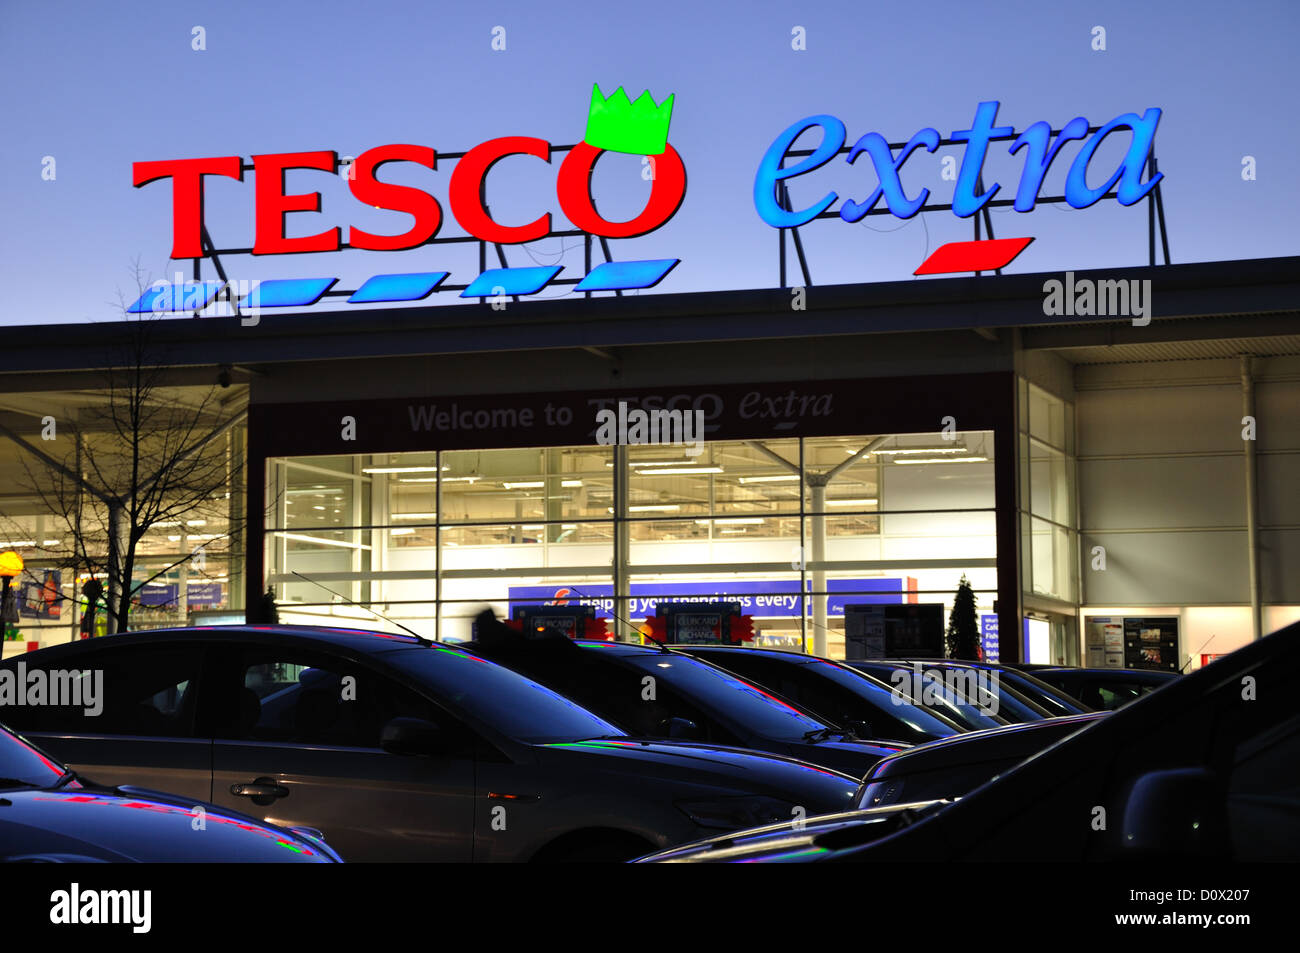 Tesco neon sign showing its green christmas hat Stock Photo